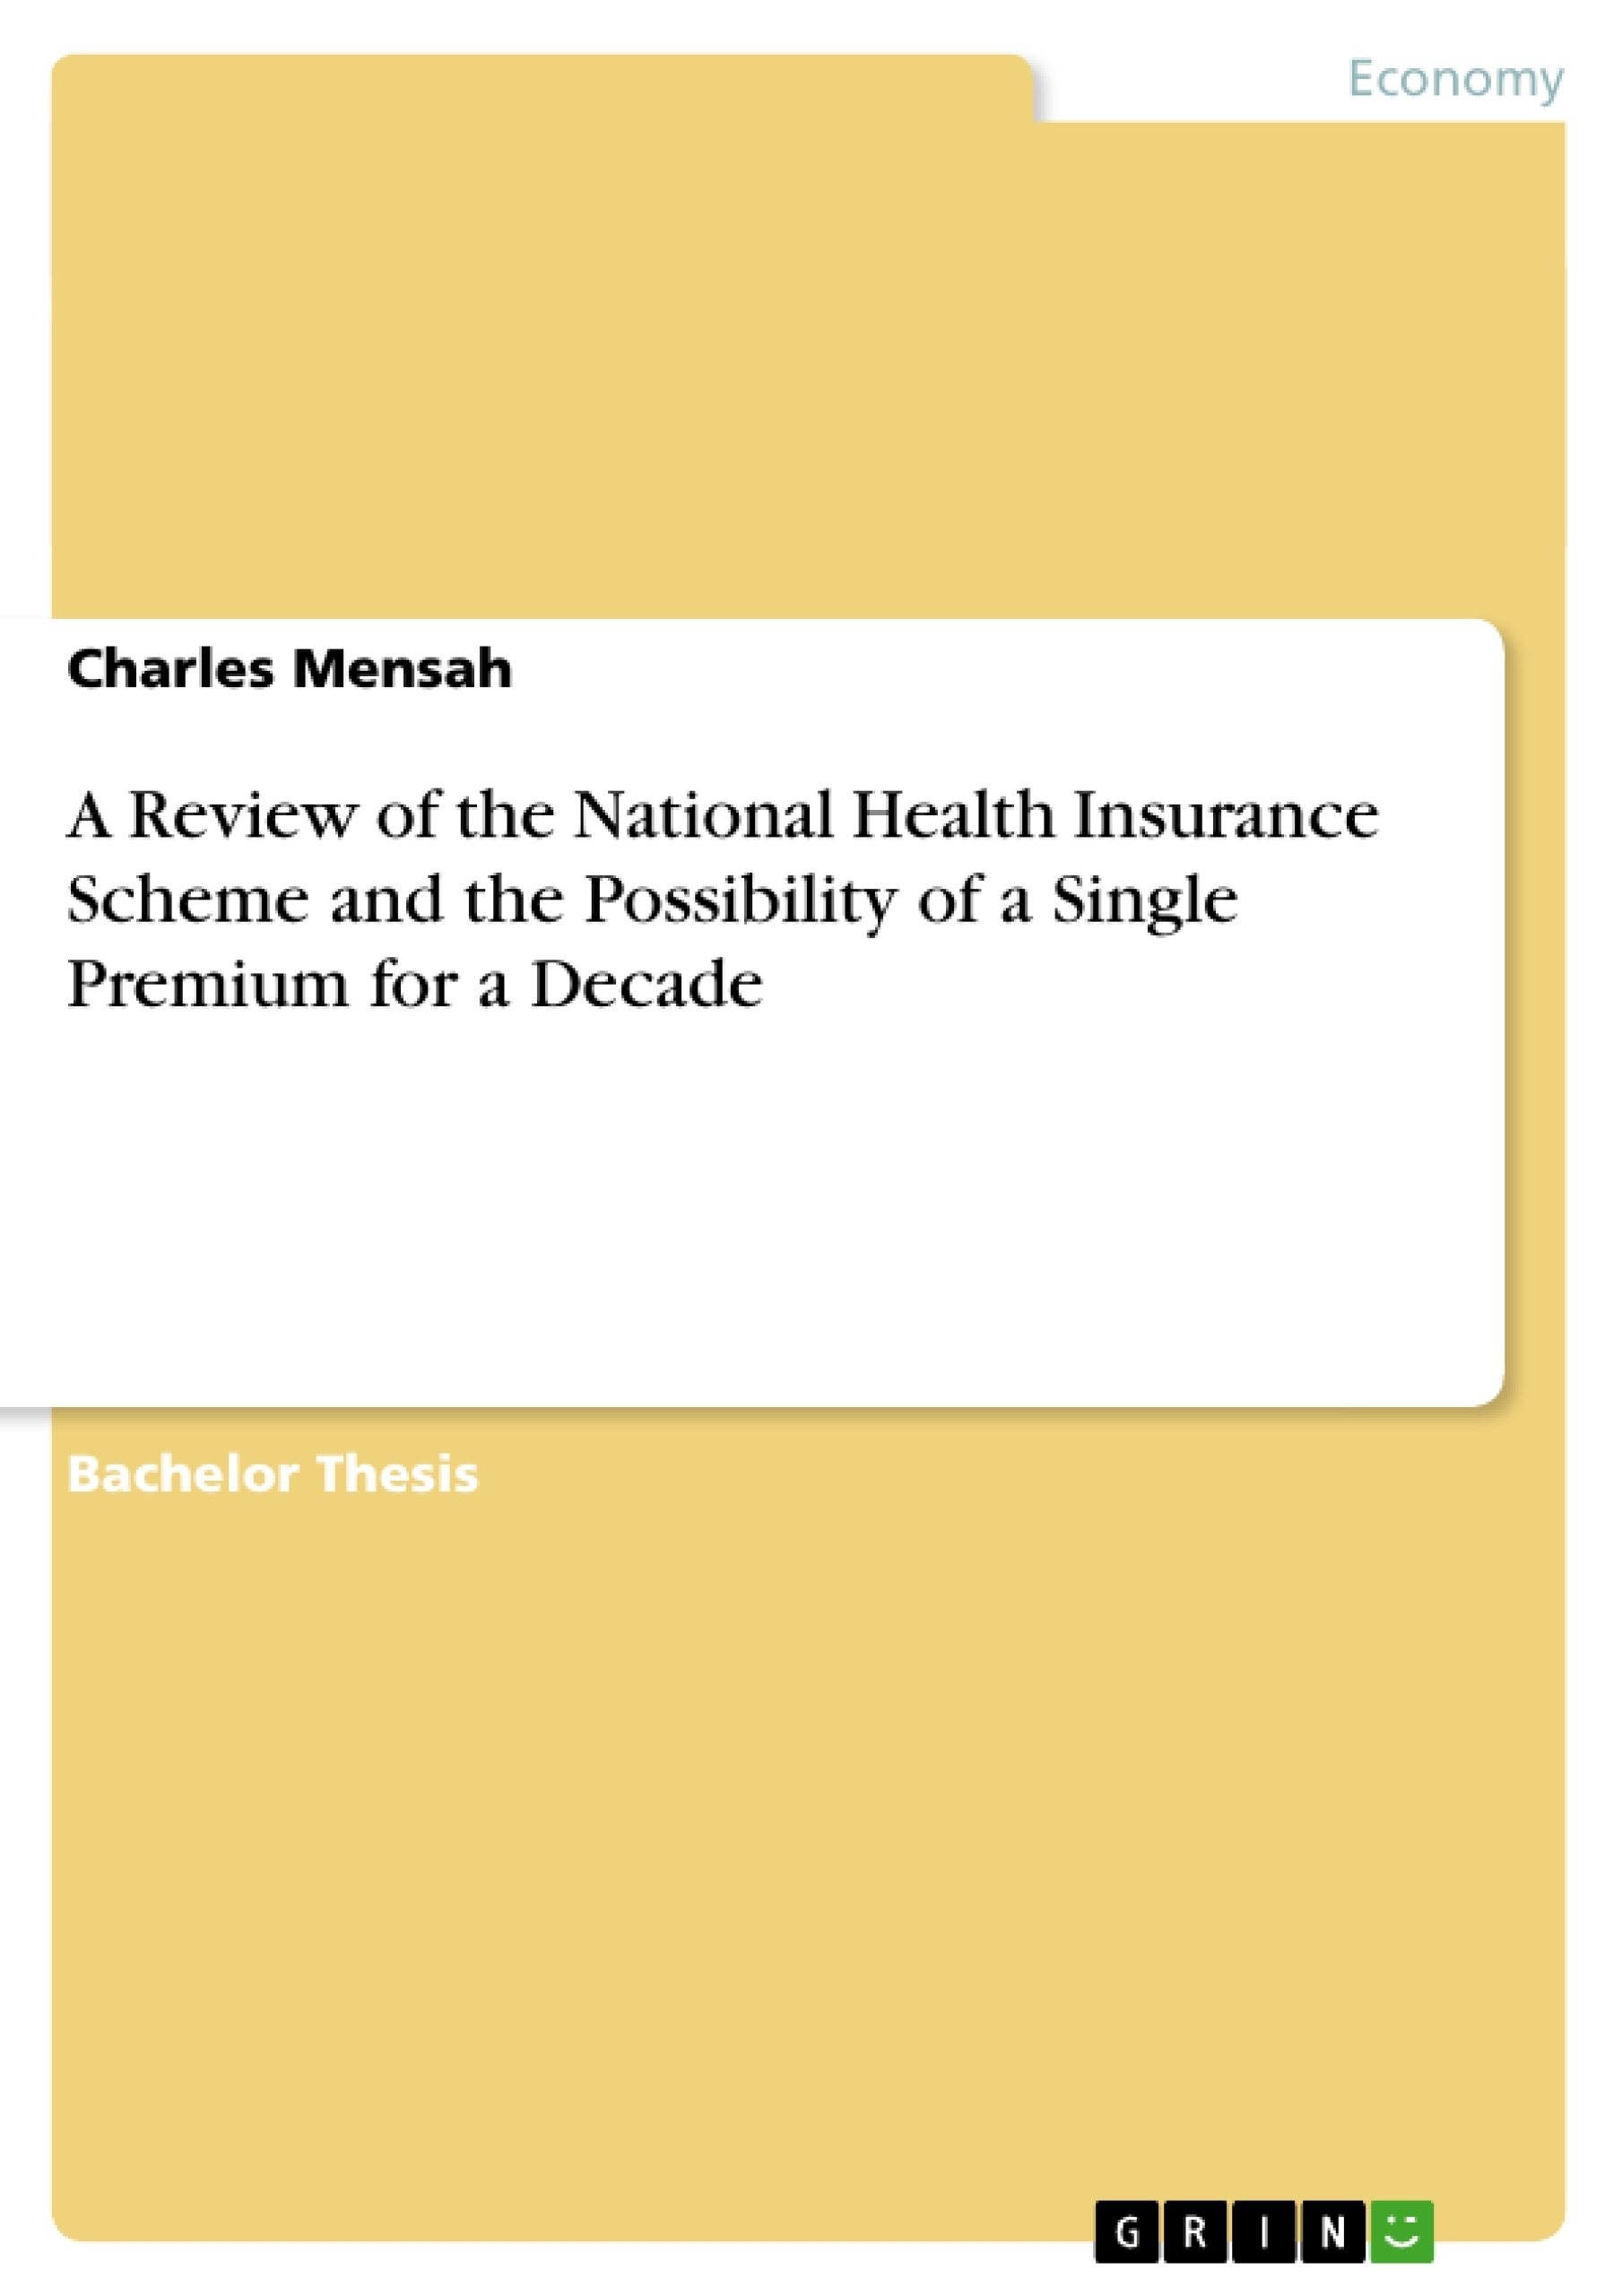 thesis on national health insurance scheme Countries that use fee for service successfully in their health insurance scheme with health insurance, uses capitation as national health insurance in.